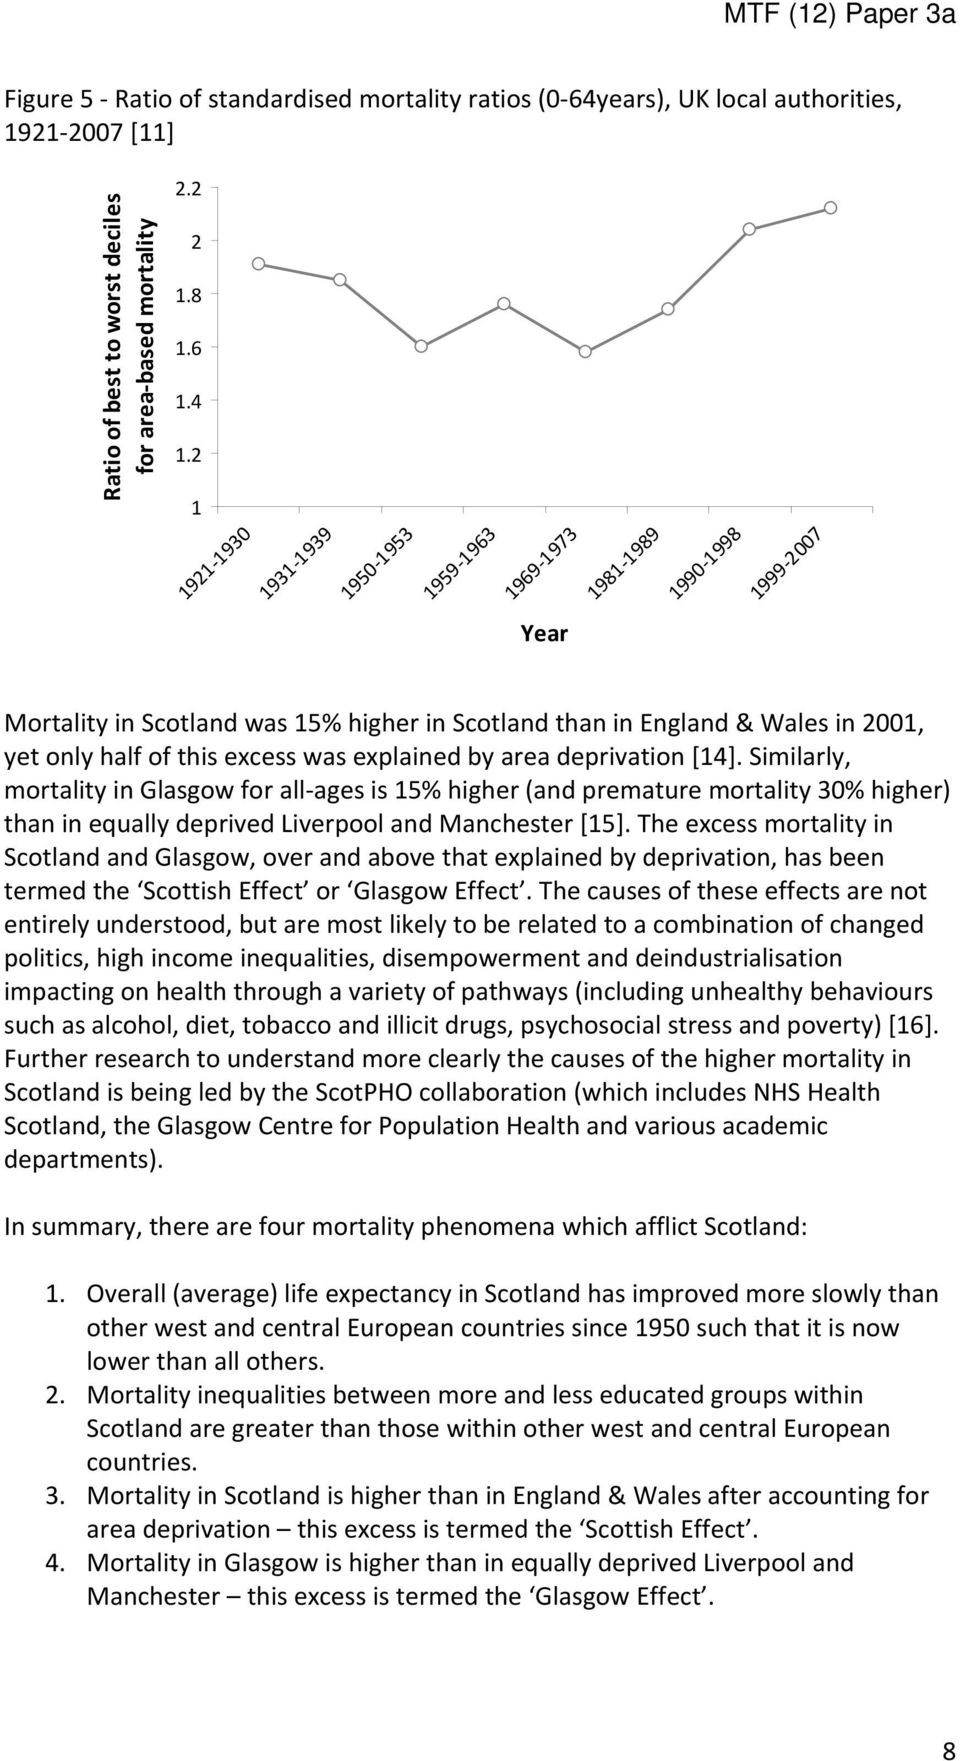 was explained by area deprivation [14]. Similarly, mortality in Glasgow for all ages is 15% higher (and premature mortality 30% higher) than in equally deprived Liverpool and Manchester [15].